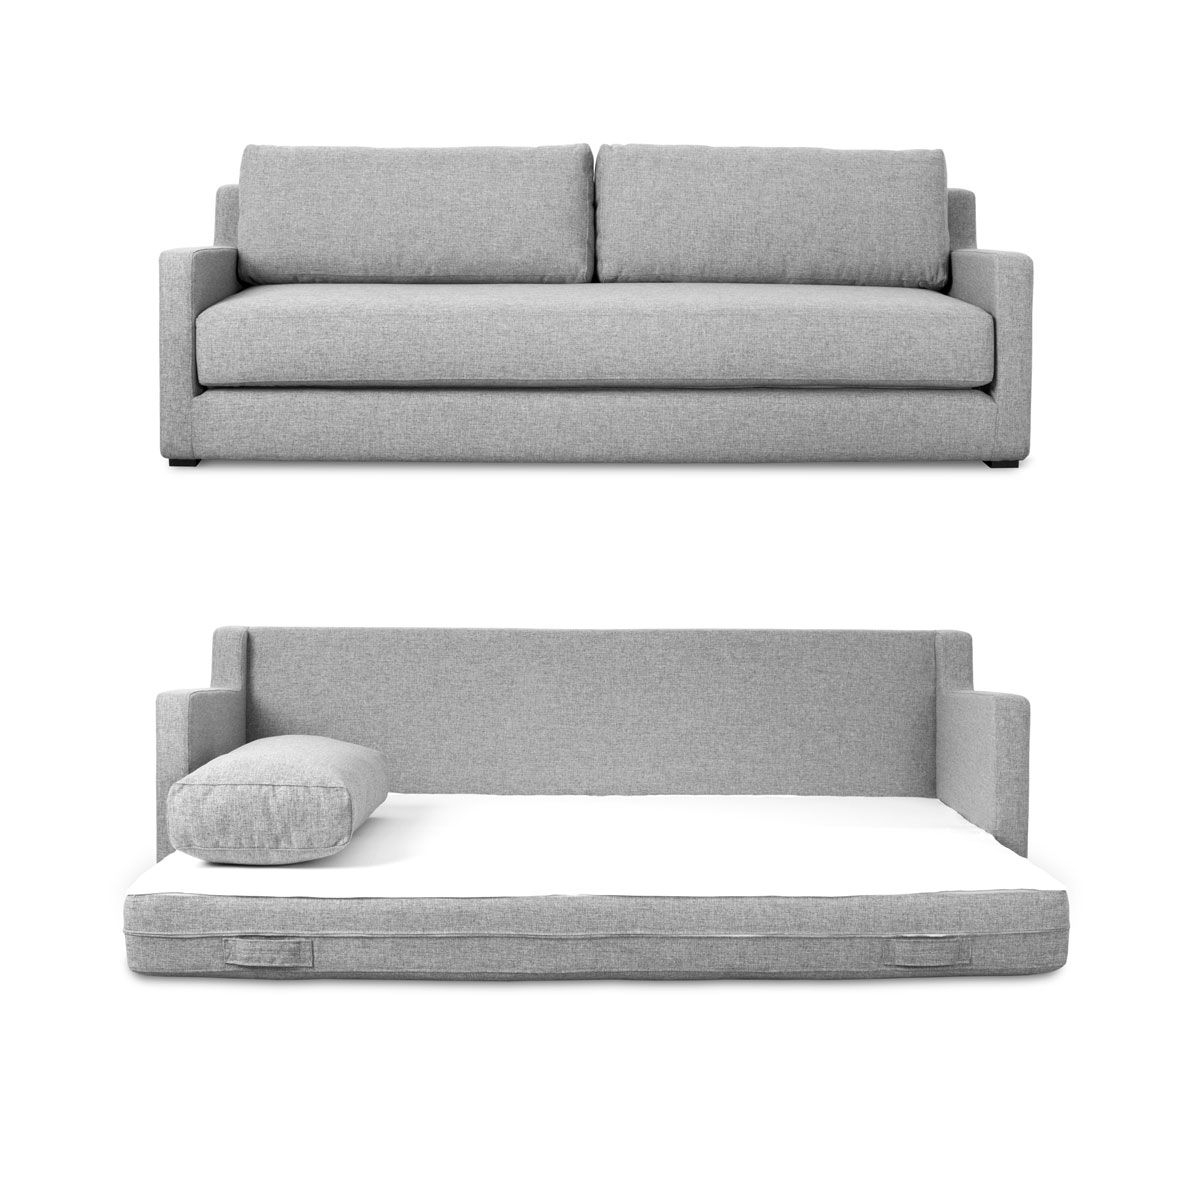 Picture of: Queen Size Convertible Sofa Bed Ideas On Foter